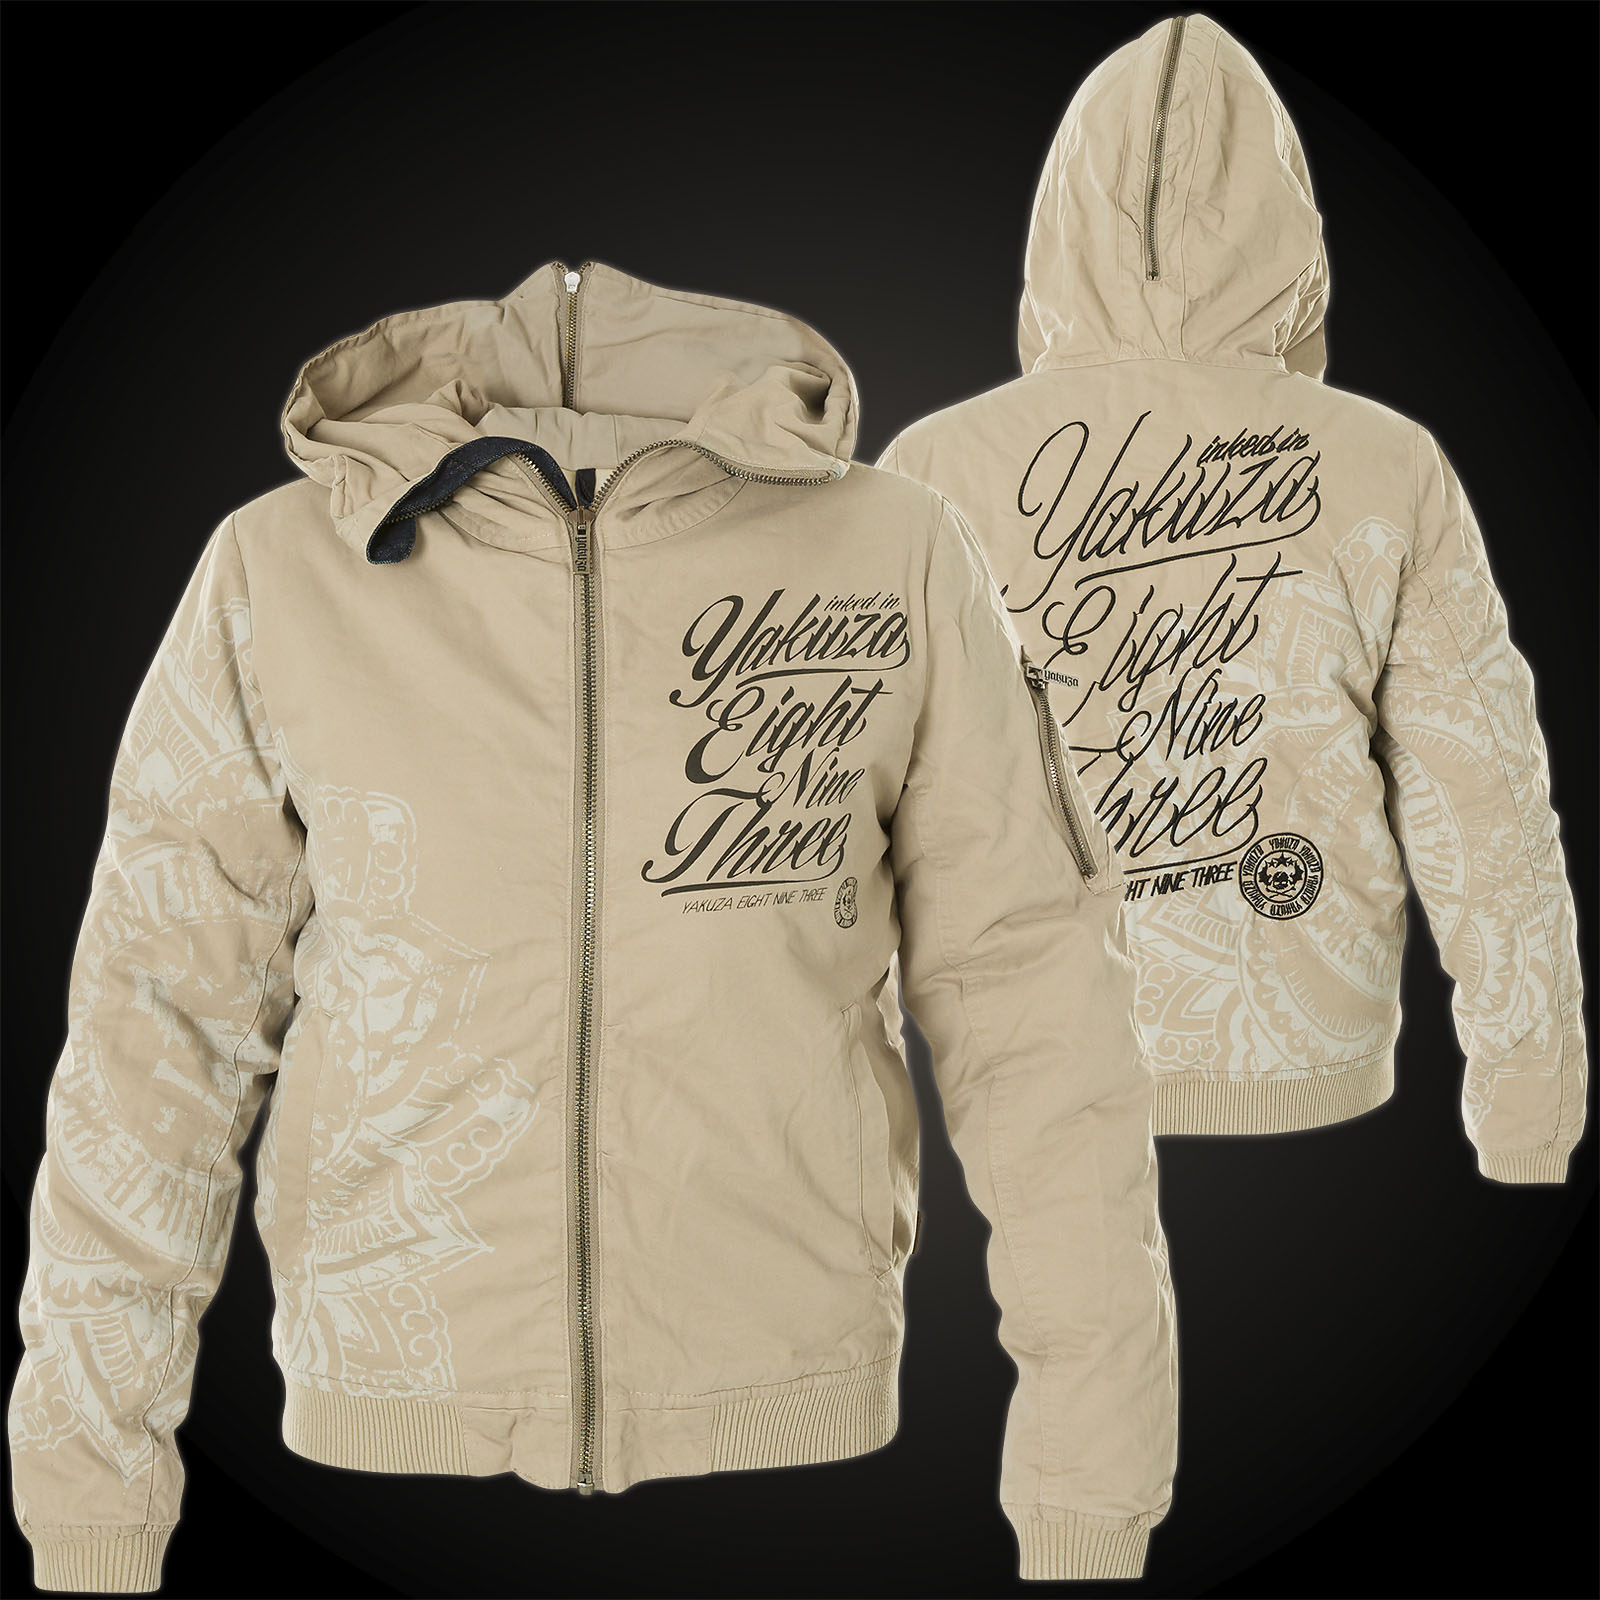 competitive price 1918c 751b0 Yakuza Damen Jacke Inked In Blood Bomber Jacke GJB-9141 Simple Taupe Grau